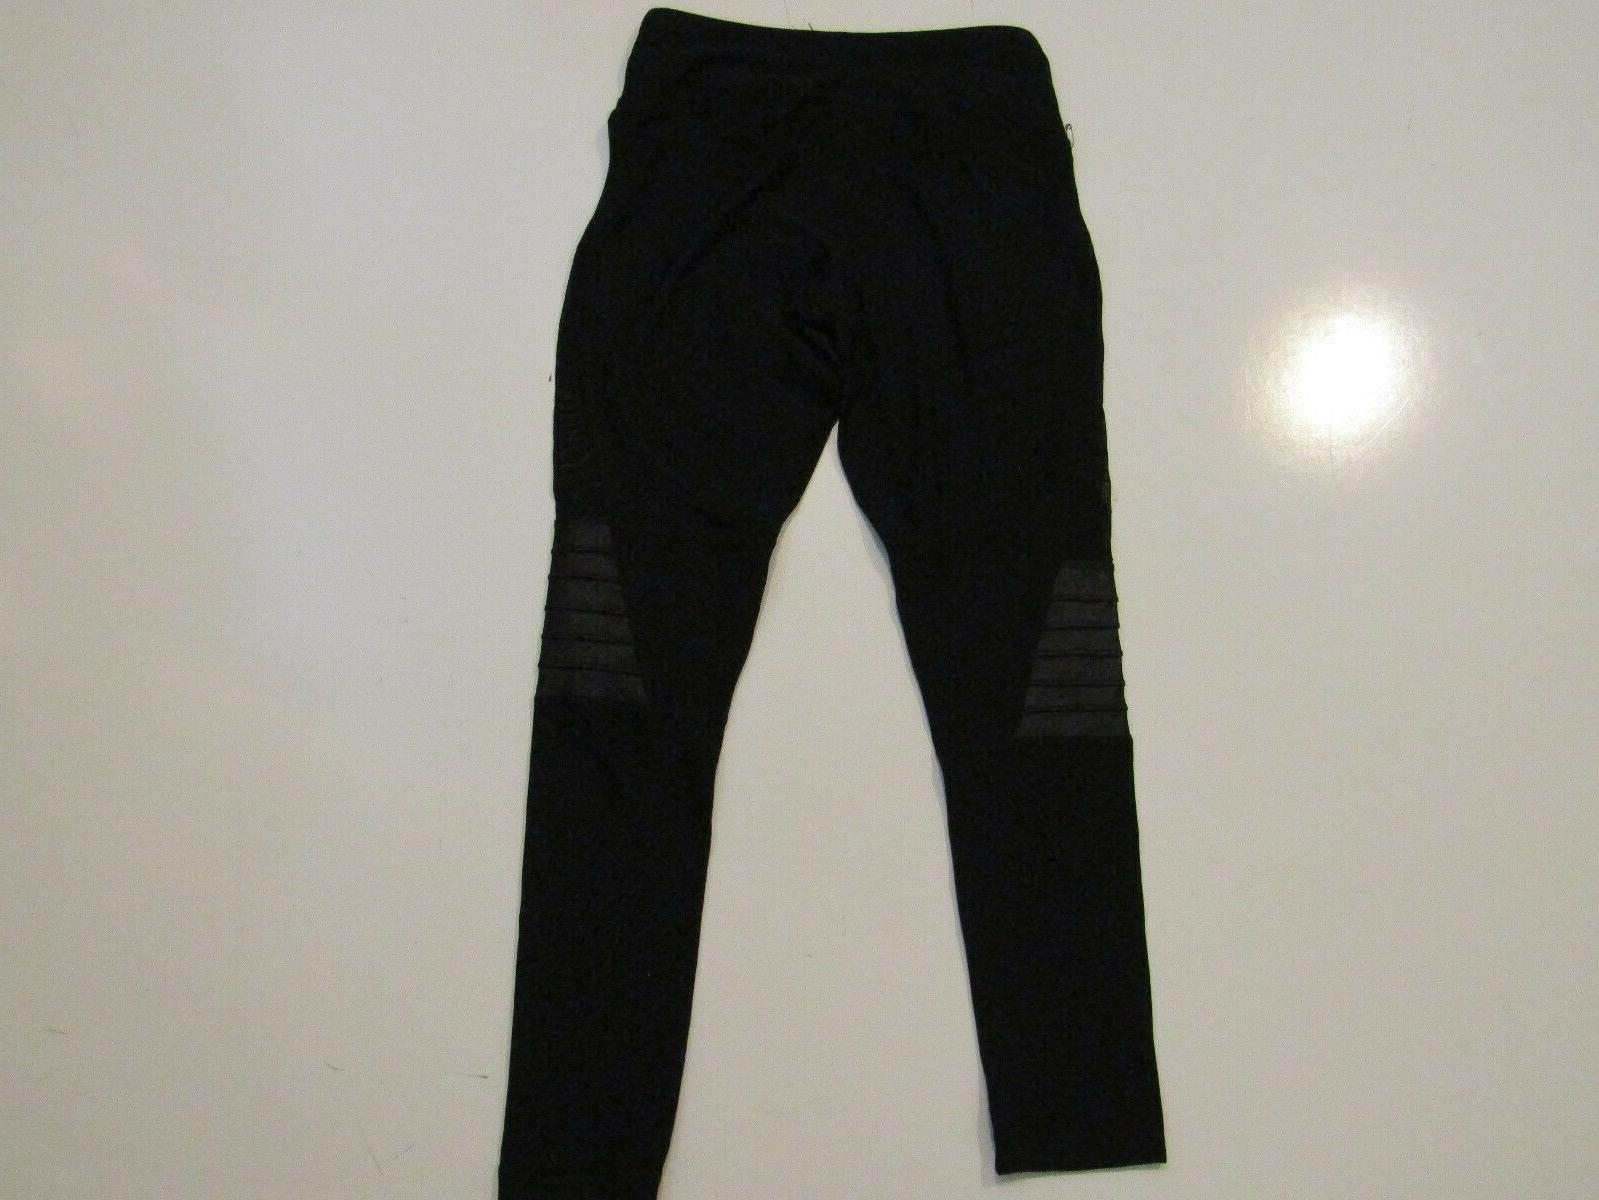 90 DEGREE BY Womens Black Active Exercise Running Pants Mesh Panel S NEW